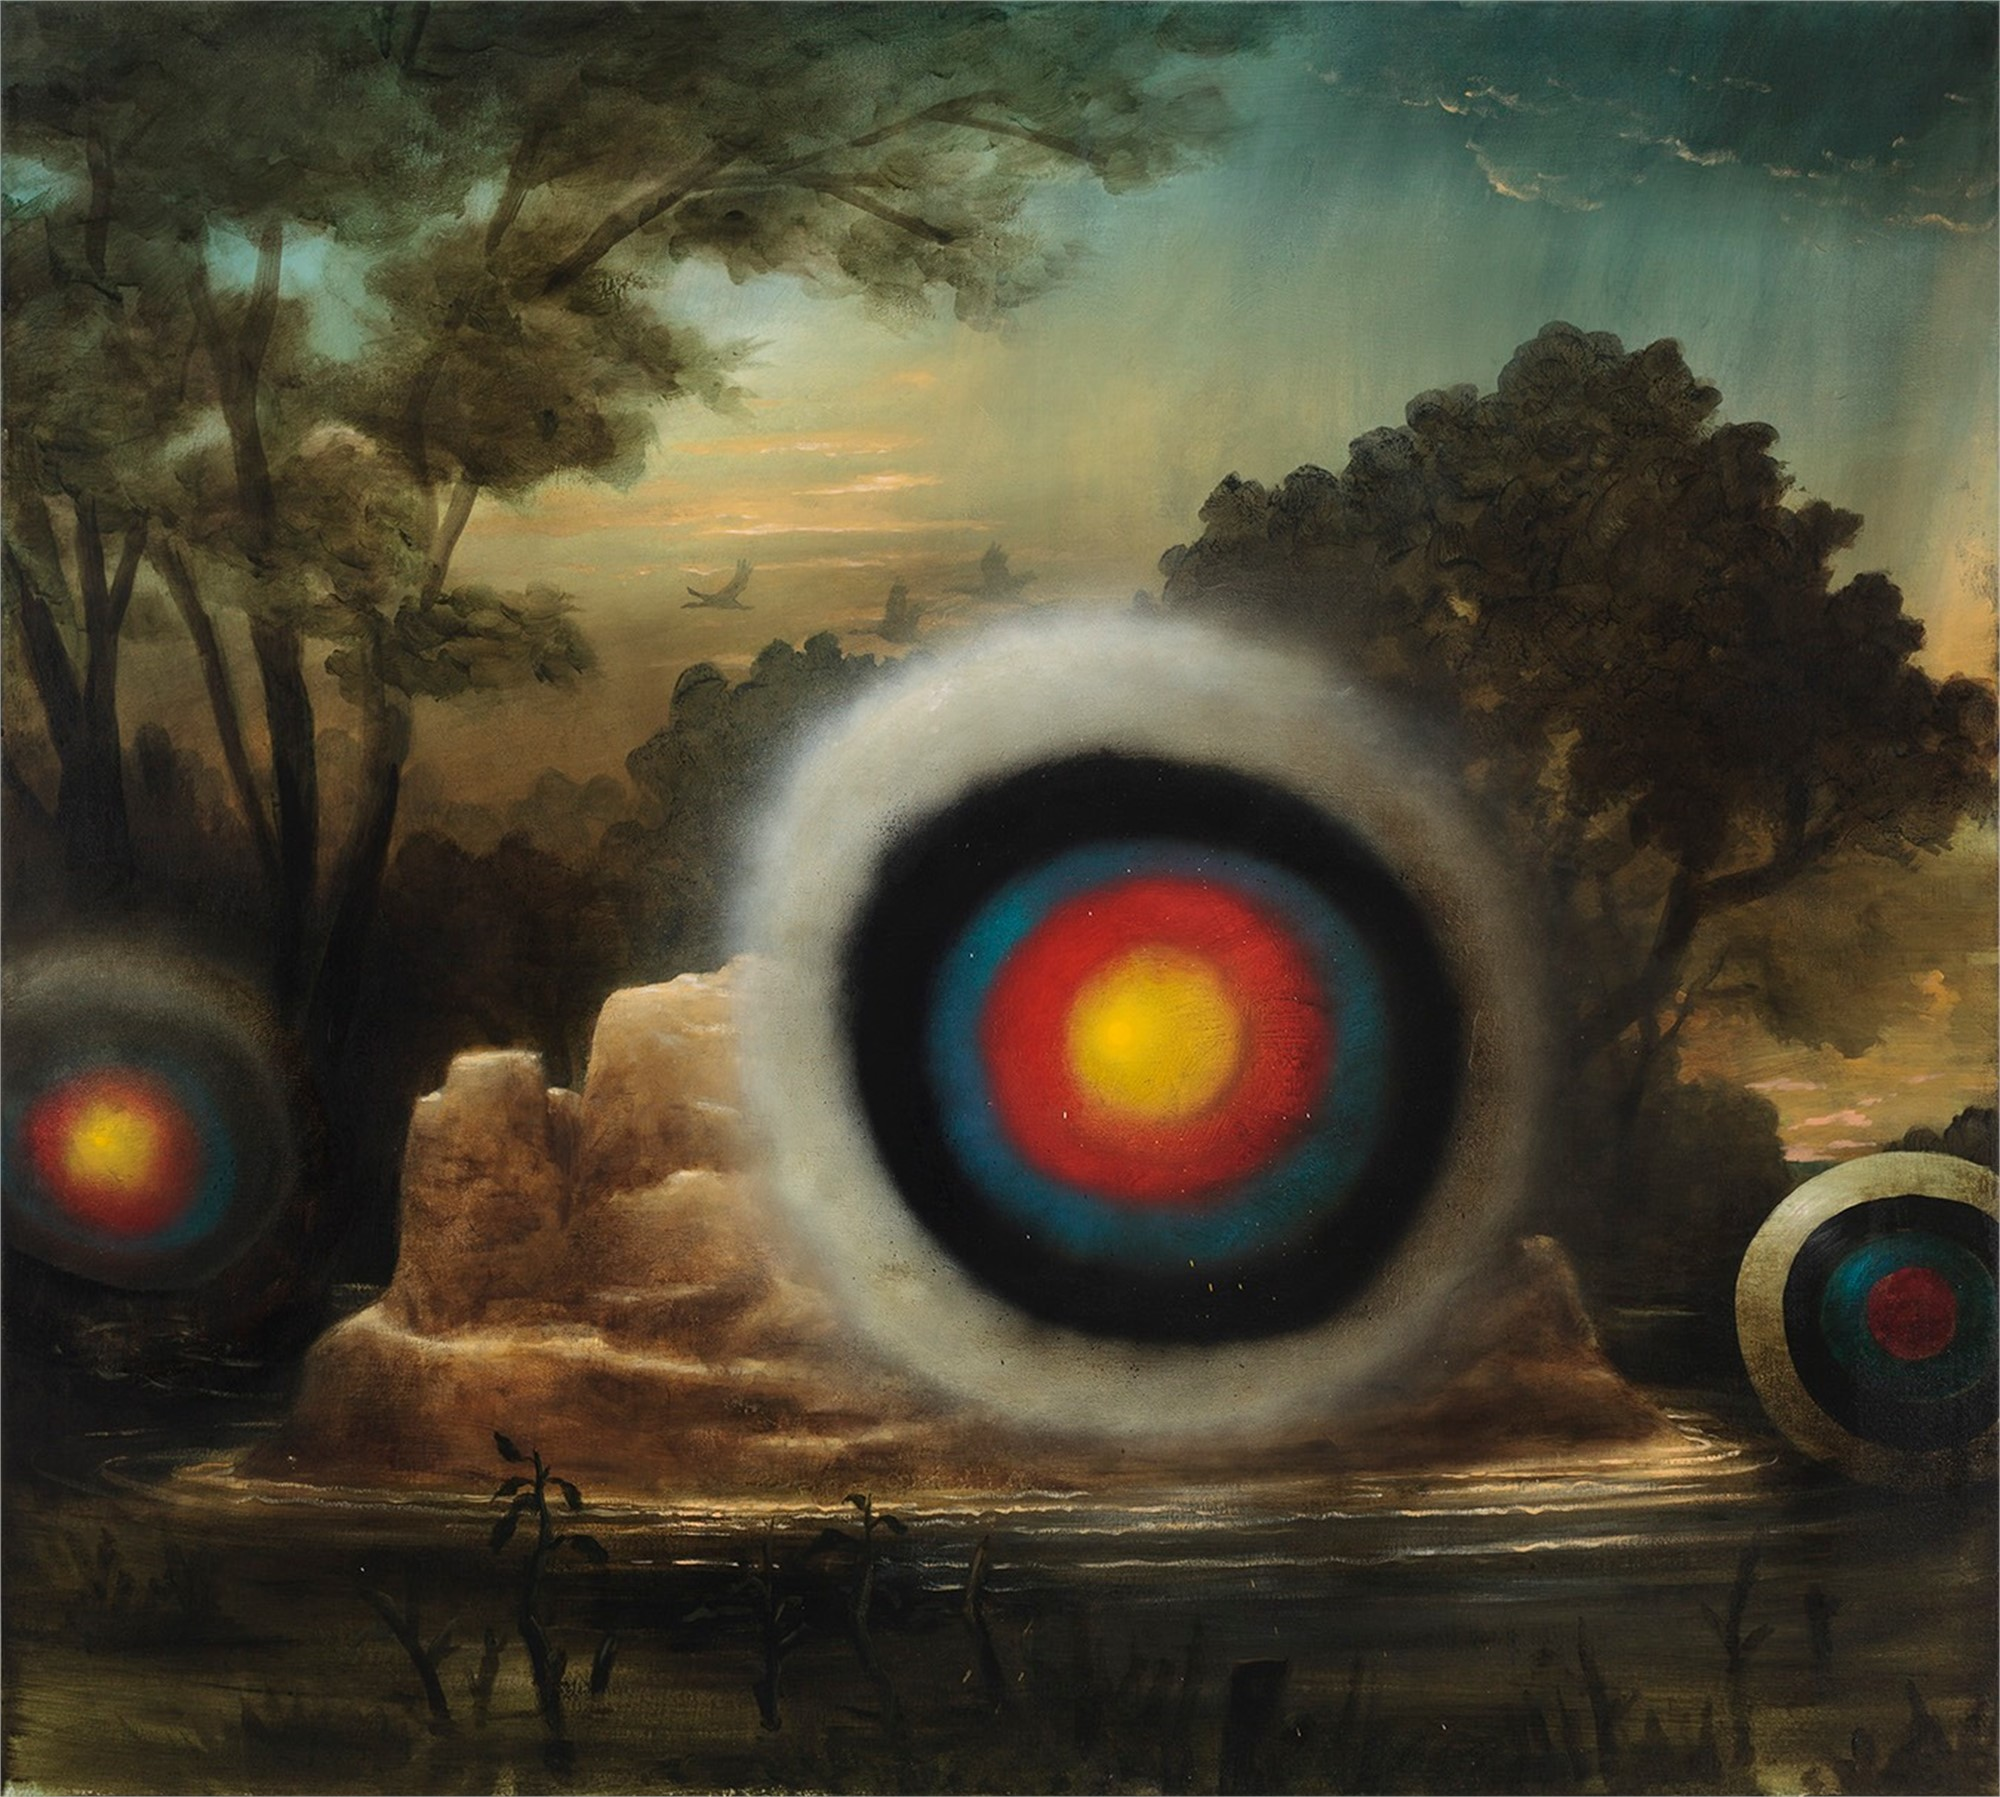 Path of Totality by Kevin Sloan